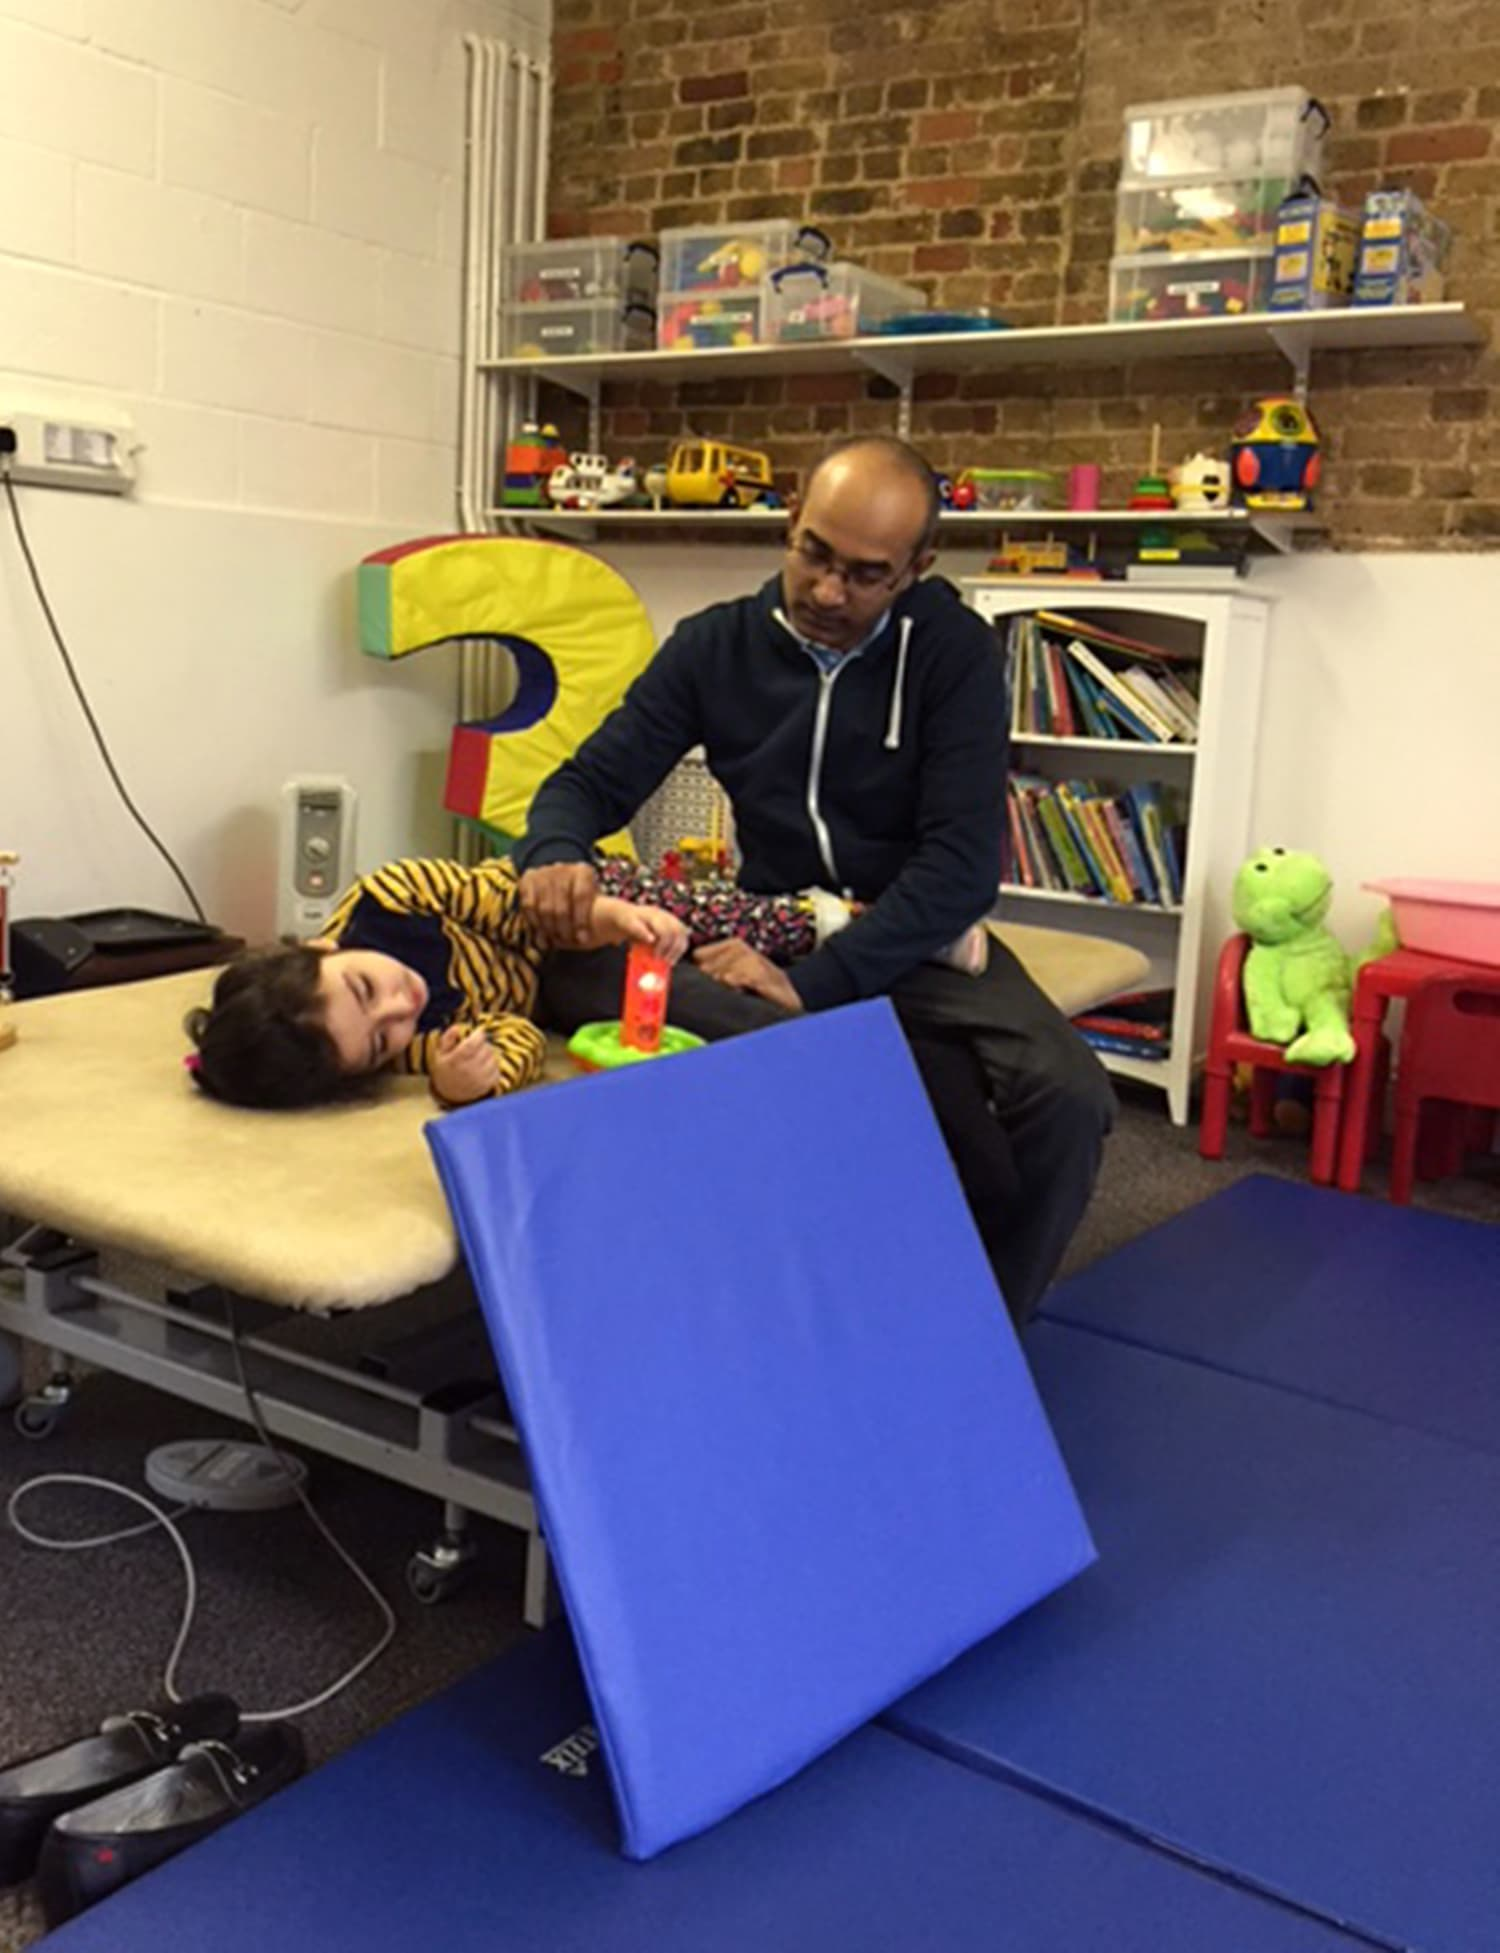 Ameera getting physiotherapy in England at the Bobath Center